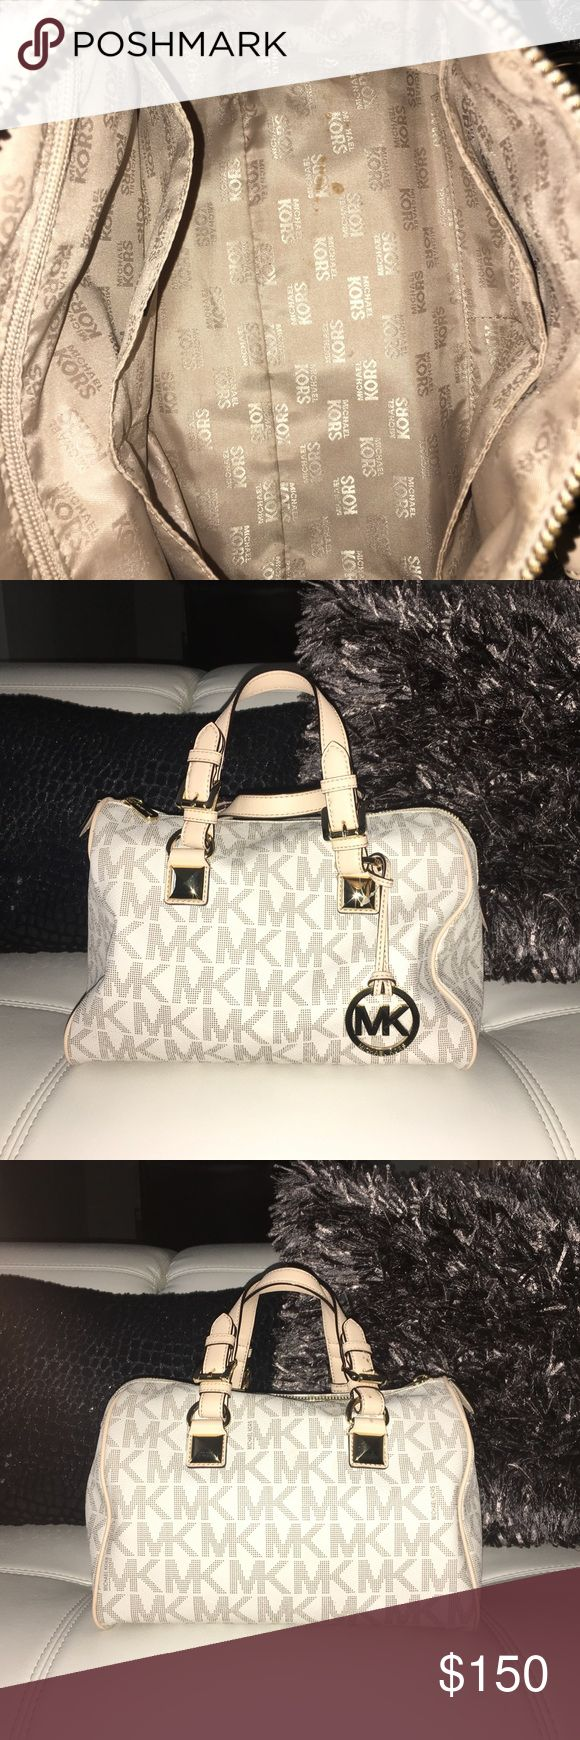 Michael Kors Grayson Small Satchel- Vanilla This is a gently used purse that I've had for 3 years now. I bought it at a retail price around $300 at the Michael Kors store located in Albertville, Minnesota. I am selling it for $180 because small purses no longer interest me! If you need any further assistance, please feel free to let me know. Thank you. *****DISCLAIMER***** THERE IS A SMALL WHITE CHOCOLATE STAIN INSIDE OF THE BAG THAT I WILL CLEAN BEFORE SHIPPING OUT!!! Michael Kors Bags…